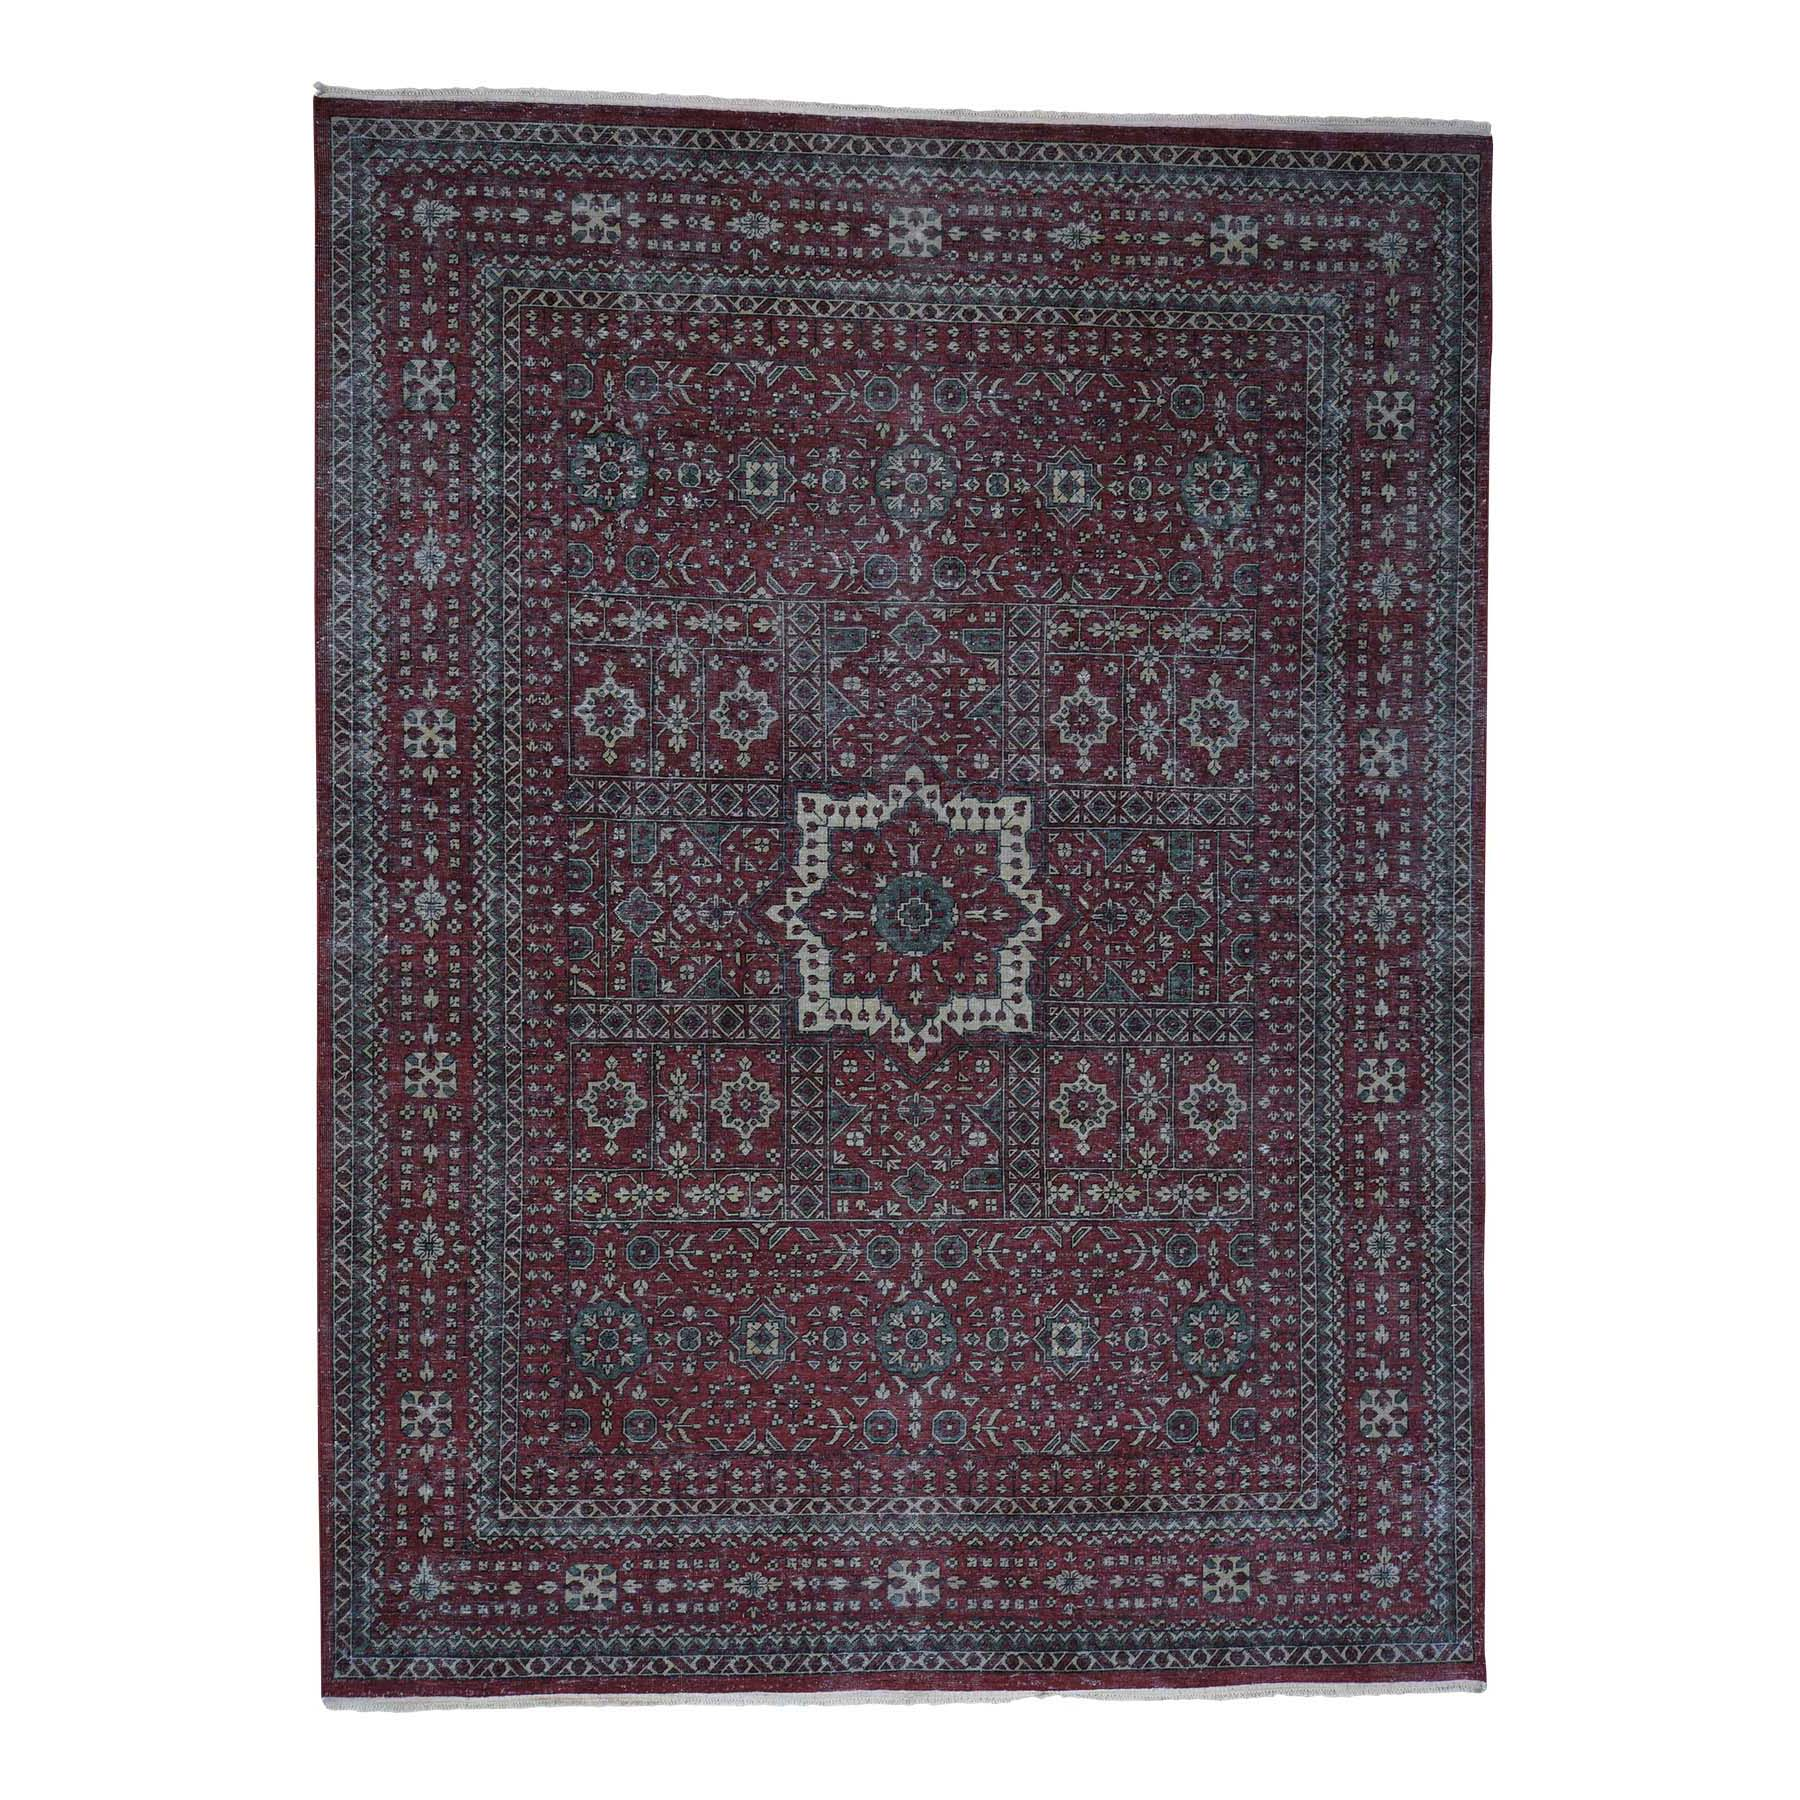 9'X12' Vintage Look Mamluk Distressed Zero Pile Shaved Low Worn Wool Rug moad06b0